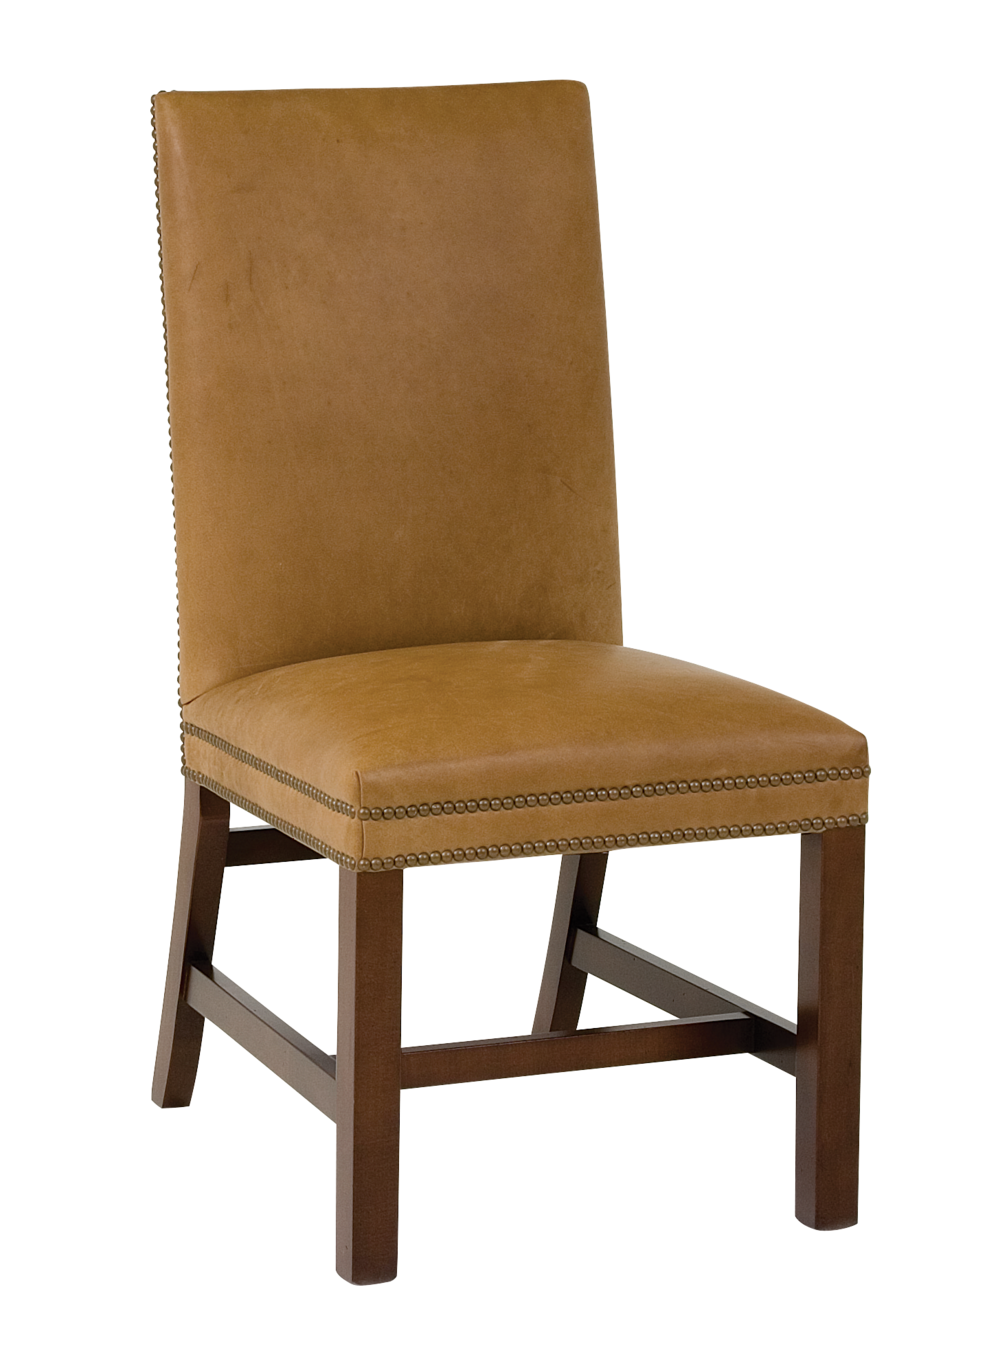 Classic Leather - Stowe Dining Chair